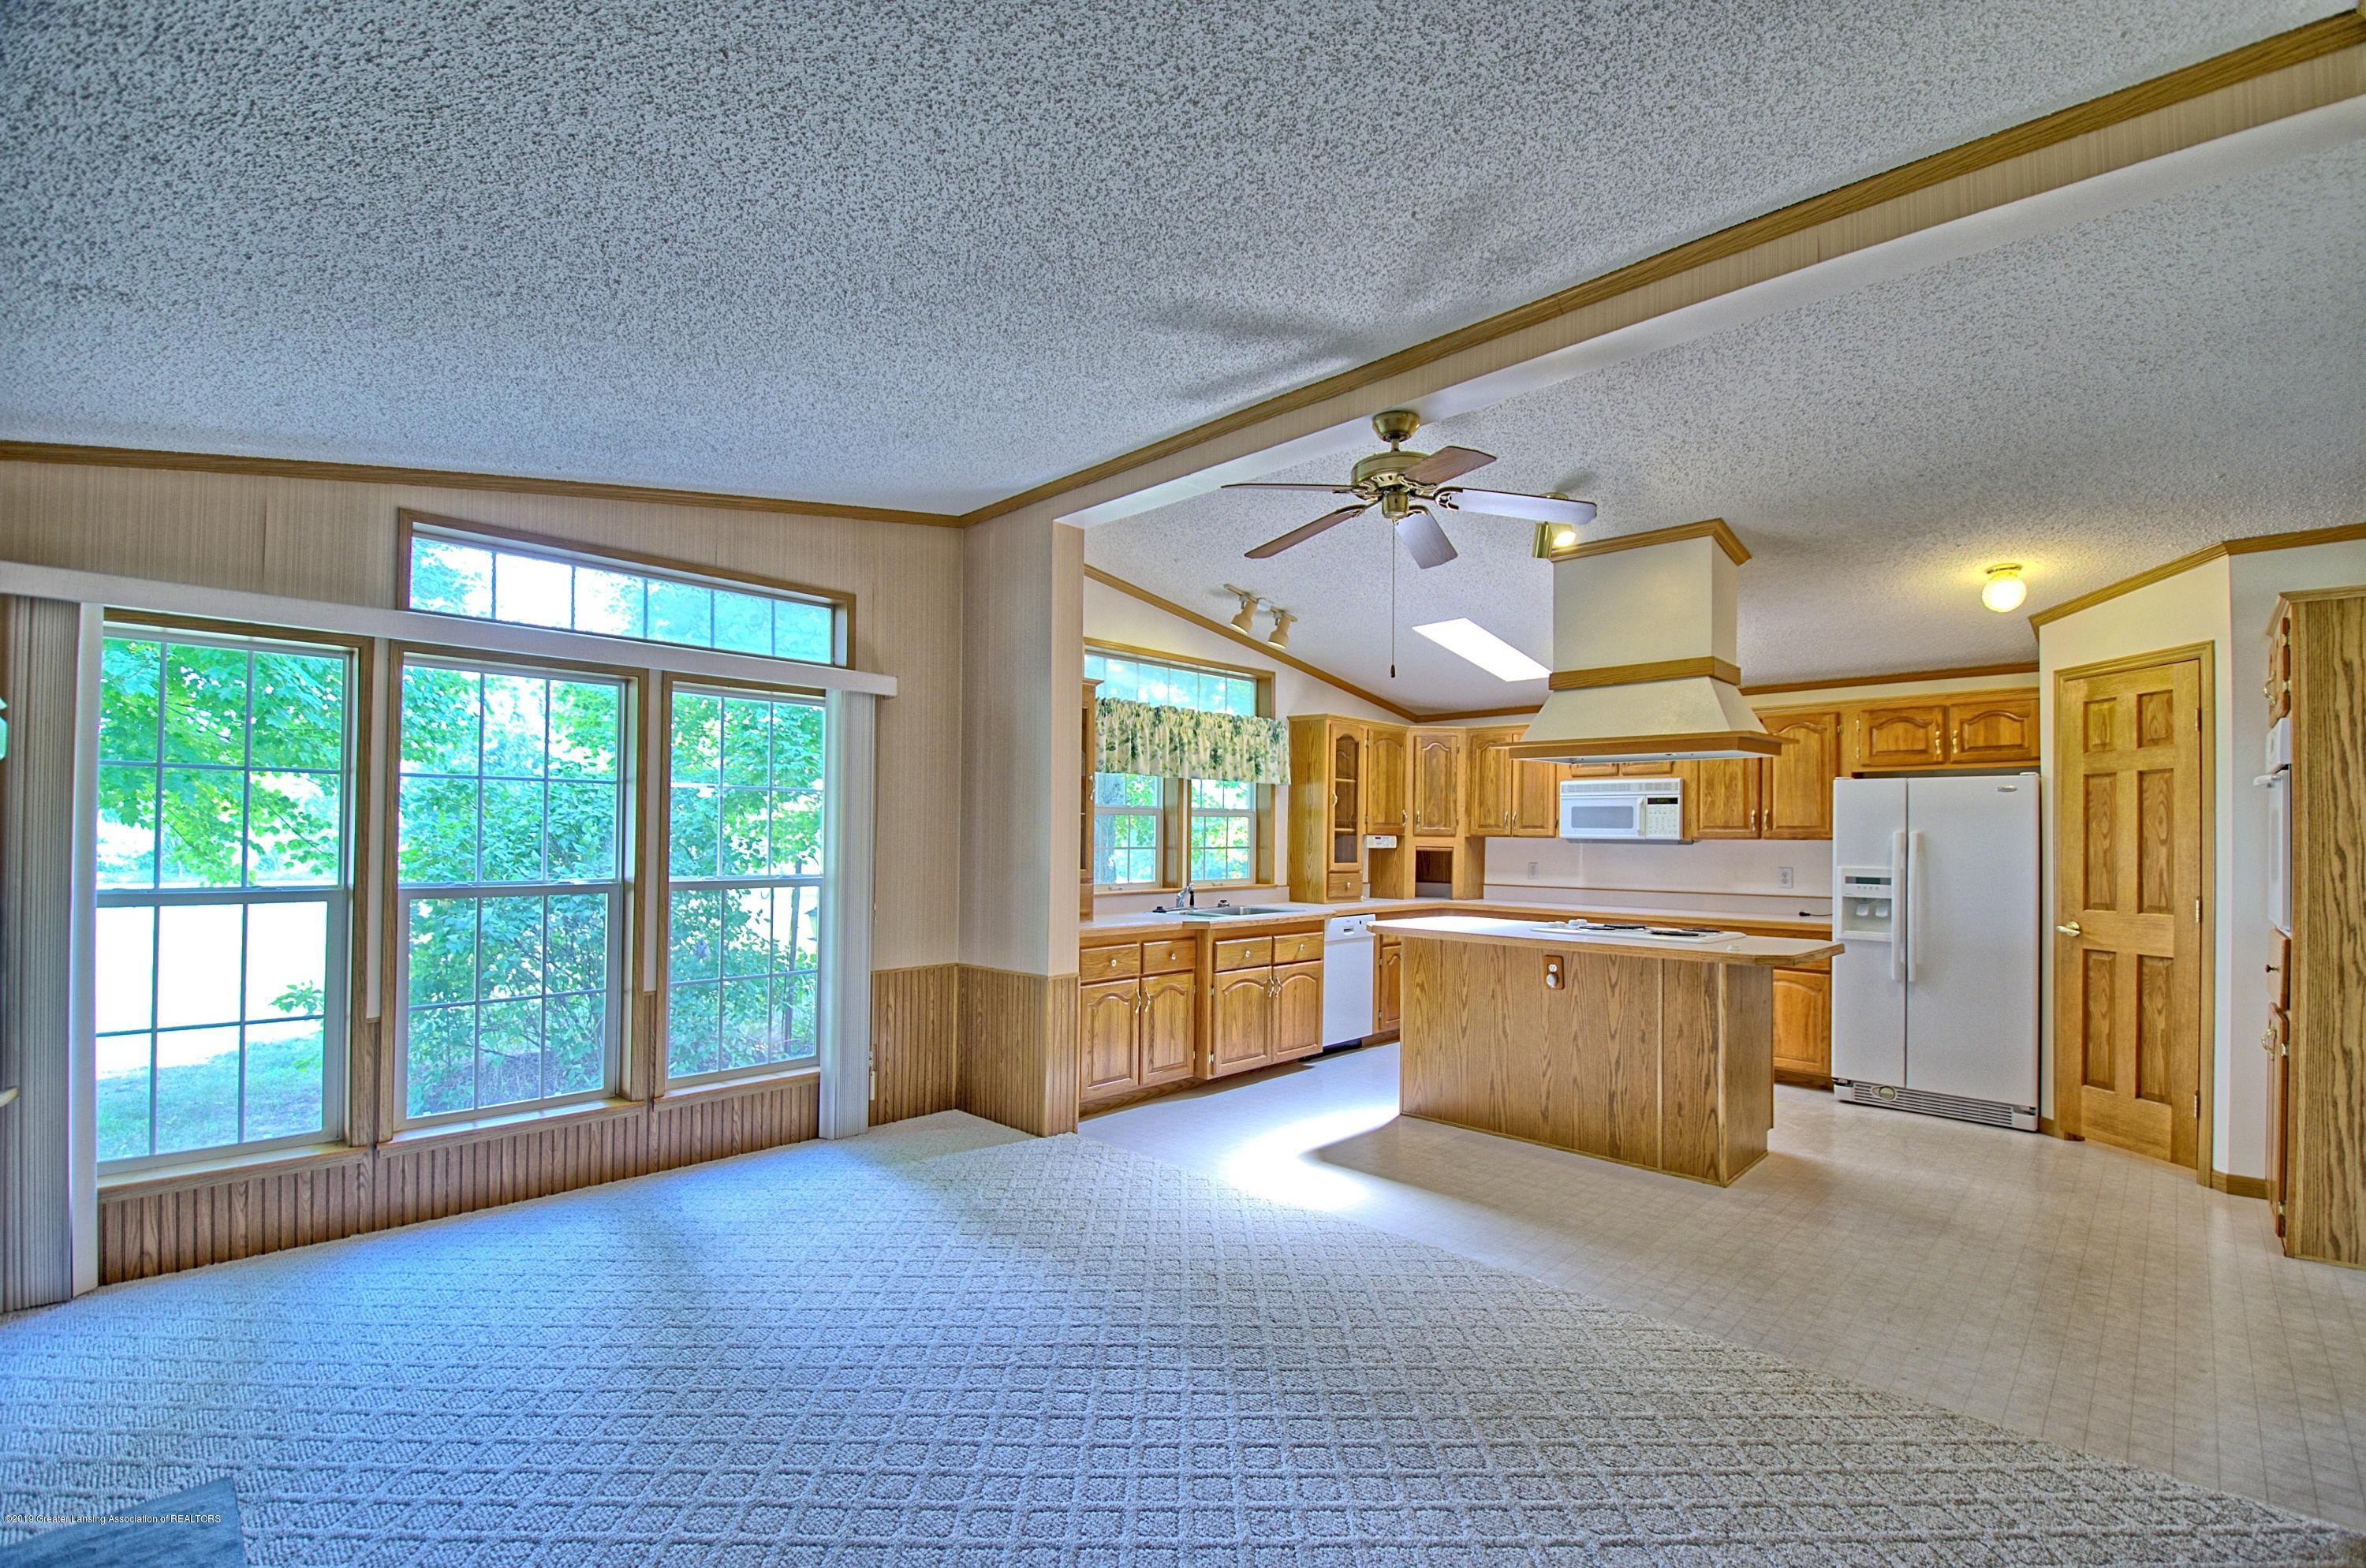 4860 Old Plank Rd - Kitchen/Dining - 5